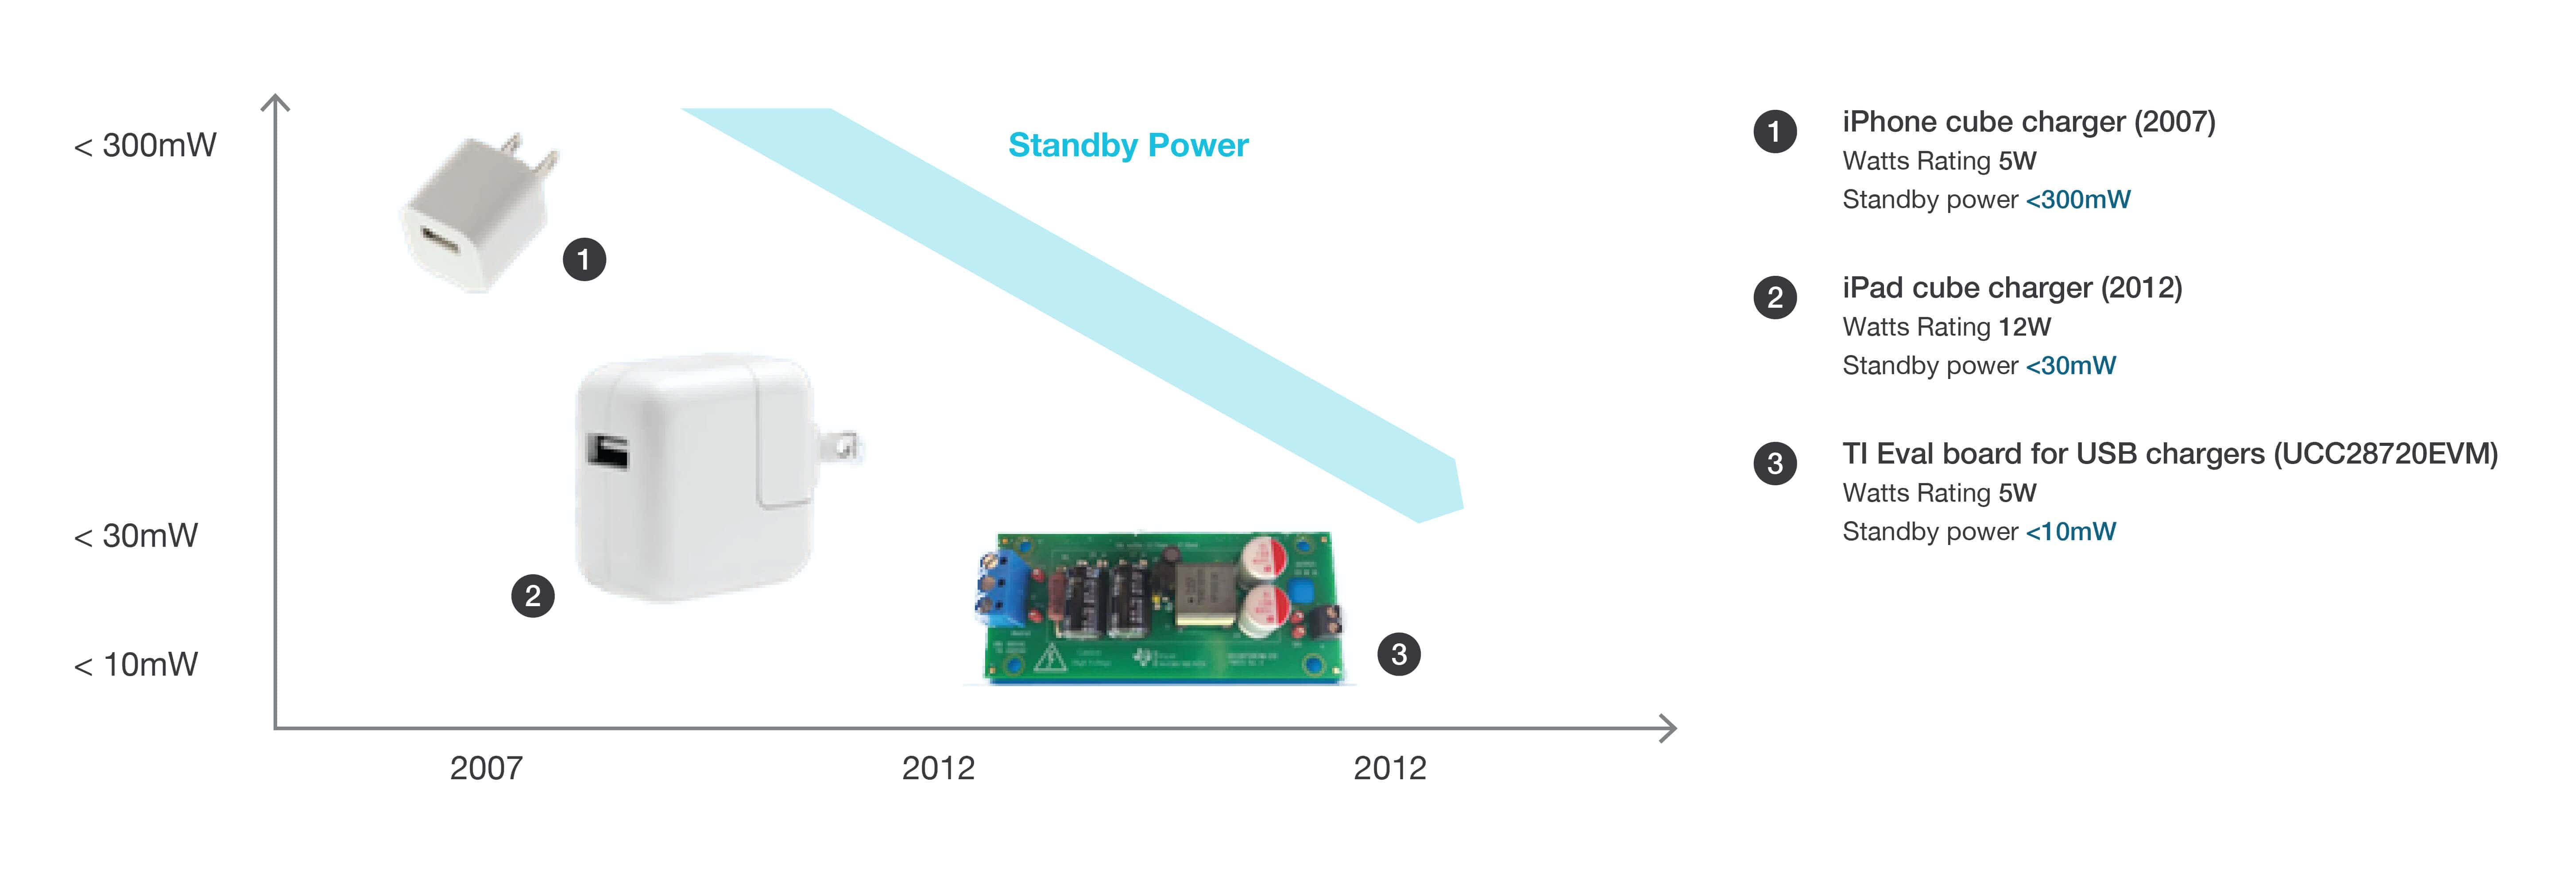 Power efficiency standards decreasing standby power consumption